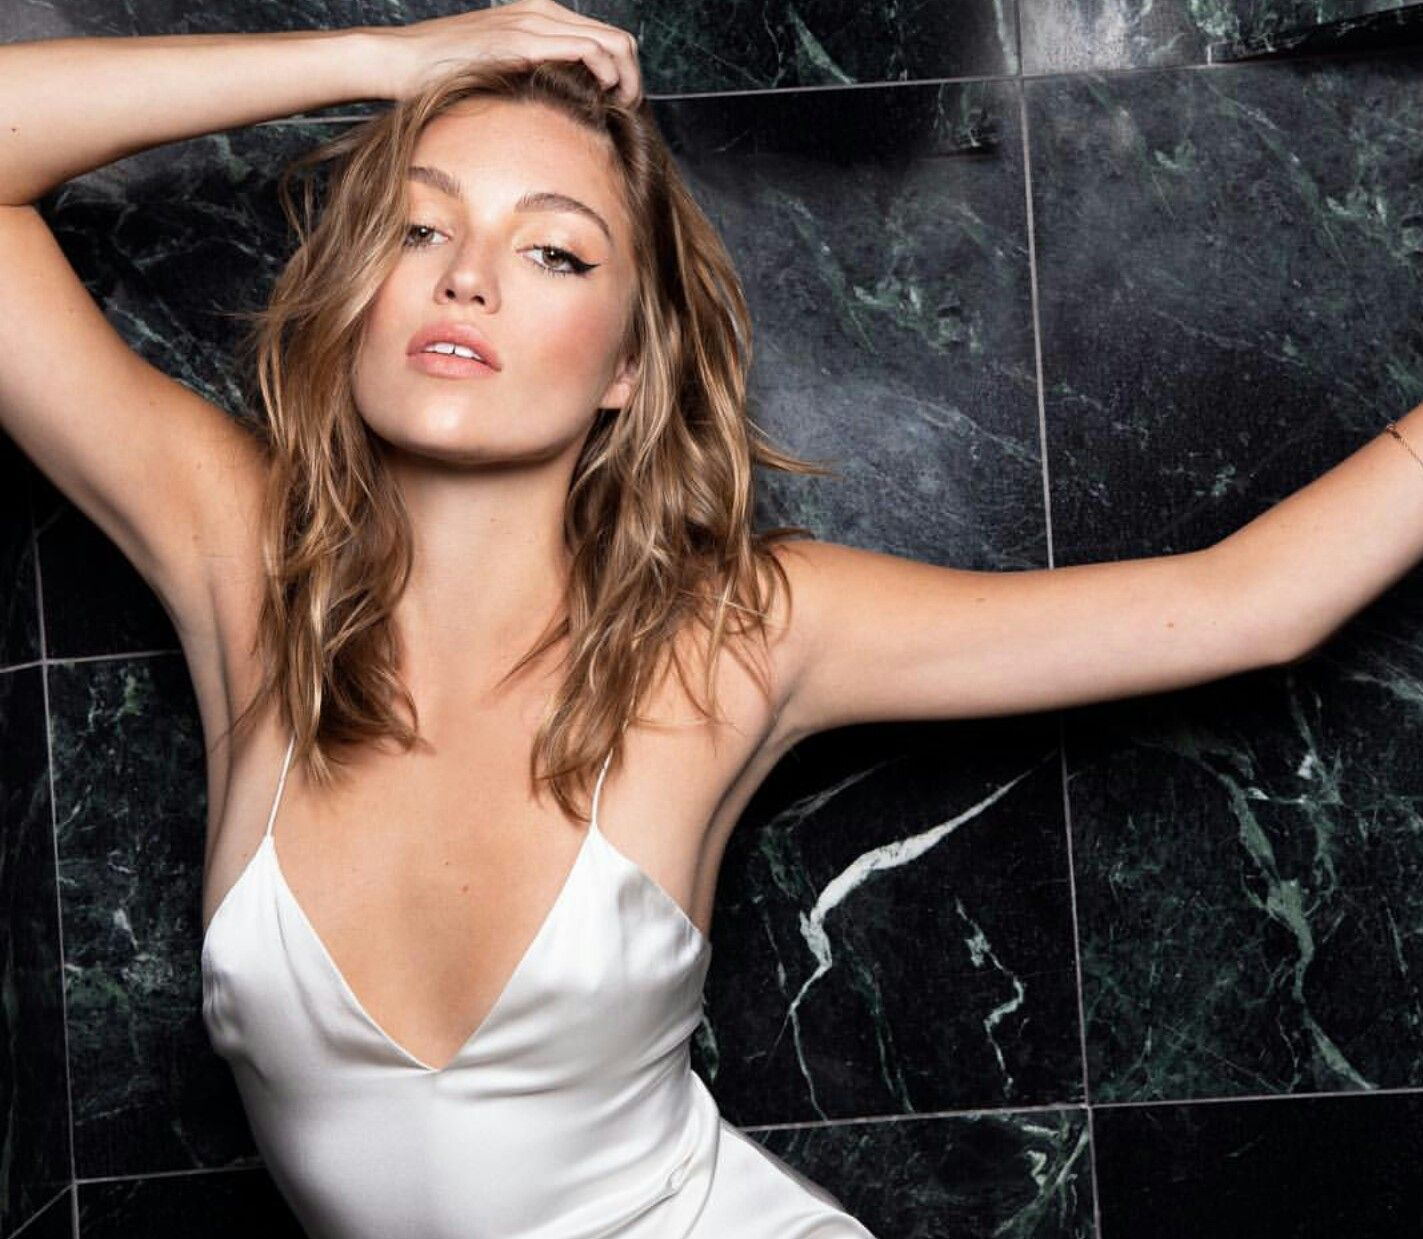 Instagram Lili Simmons naked (63 photos), Ass, Hot, Selfie, braless 2017